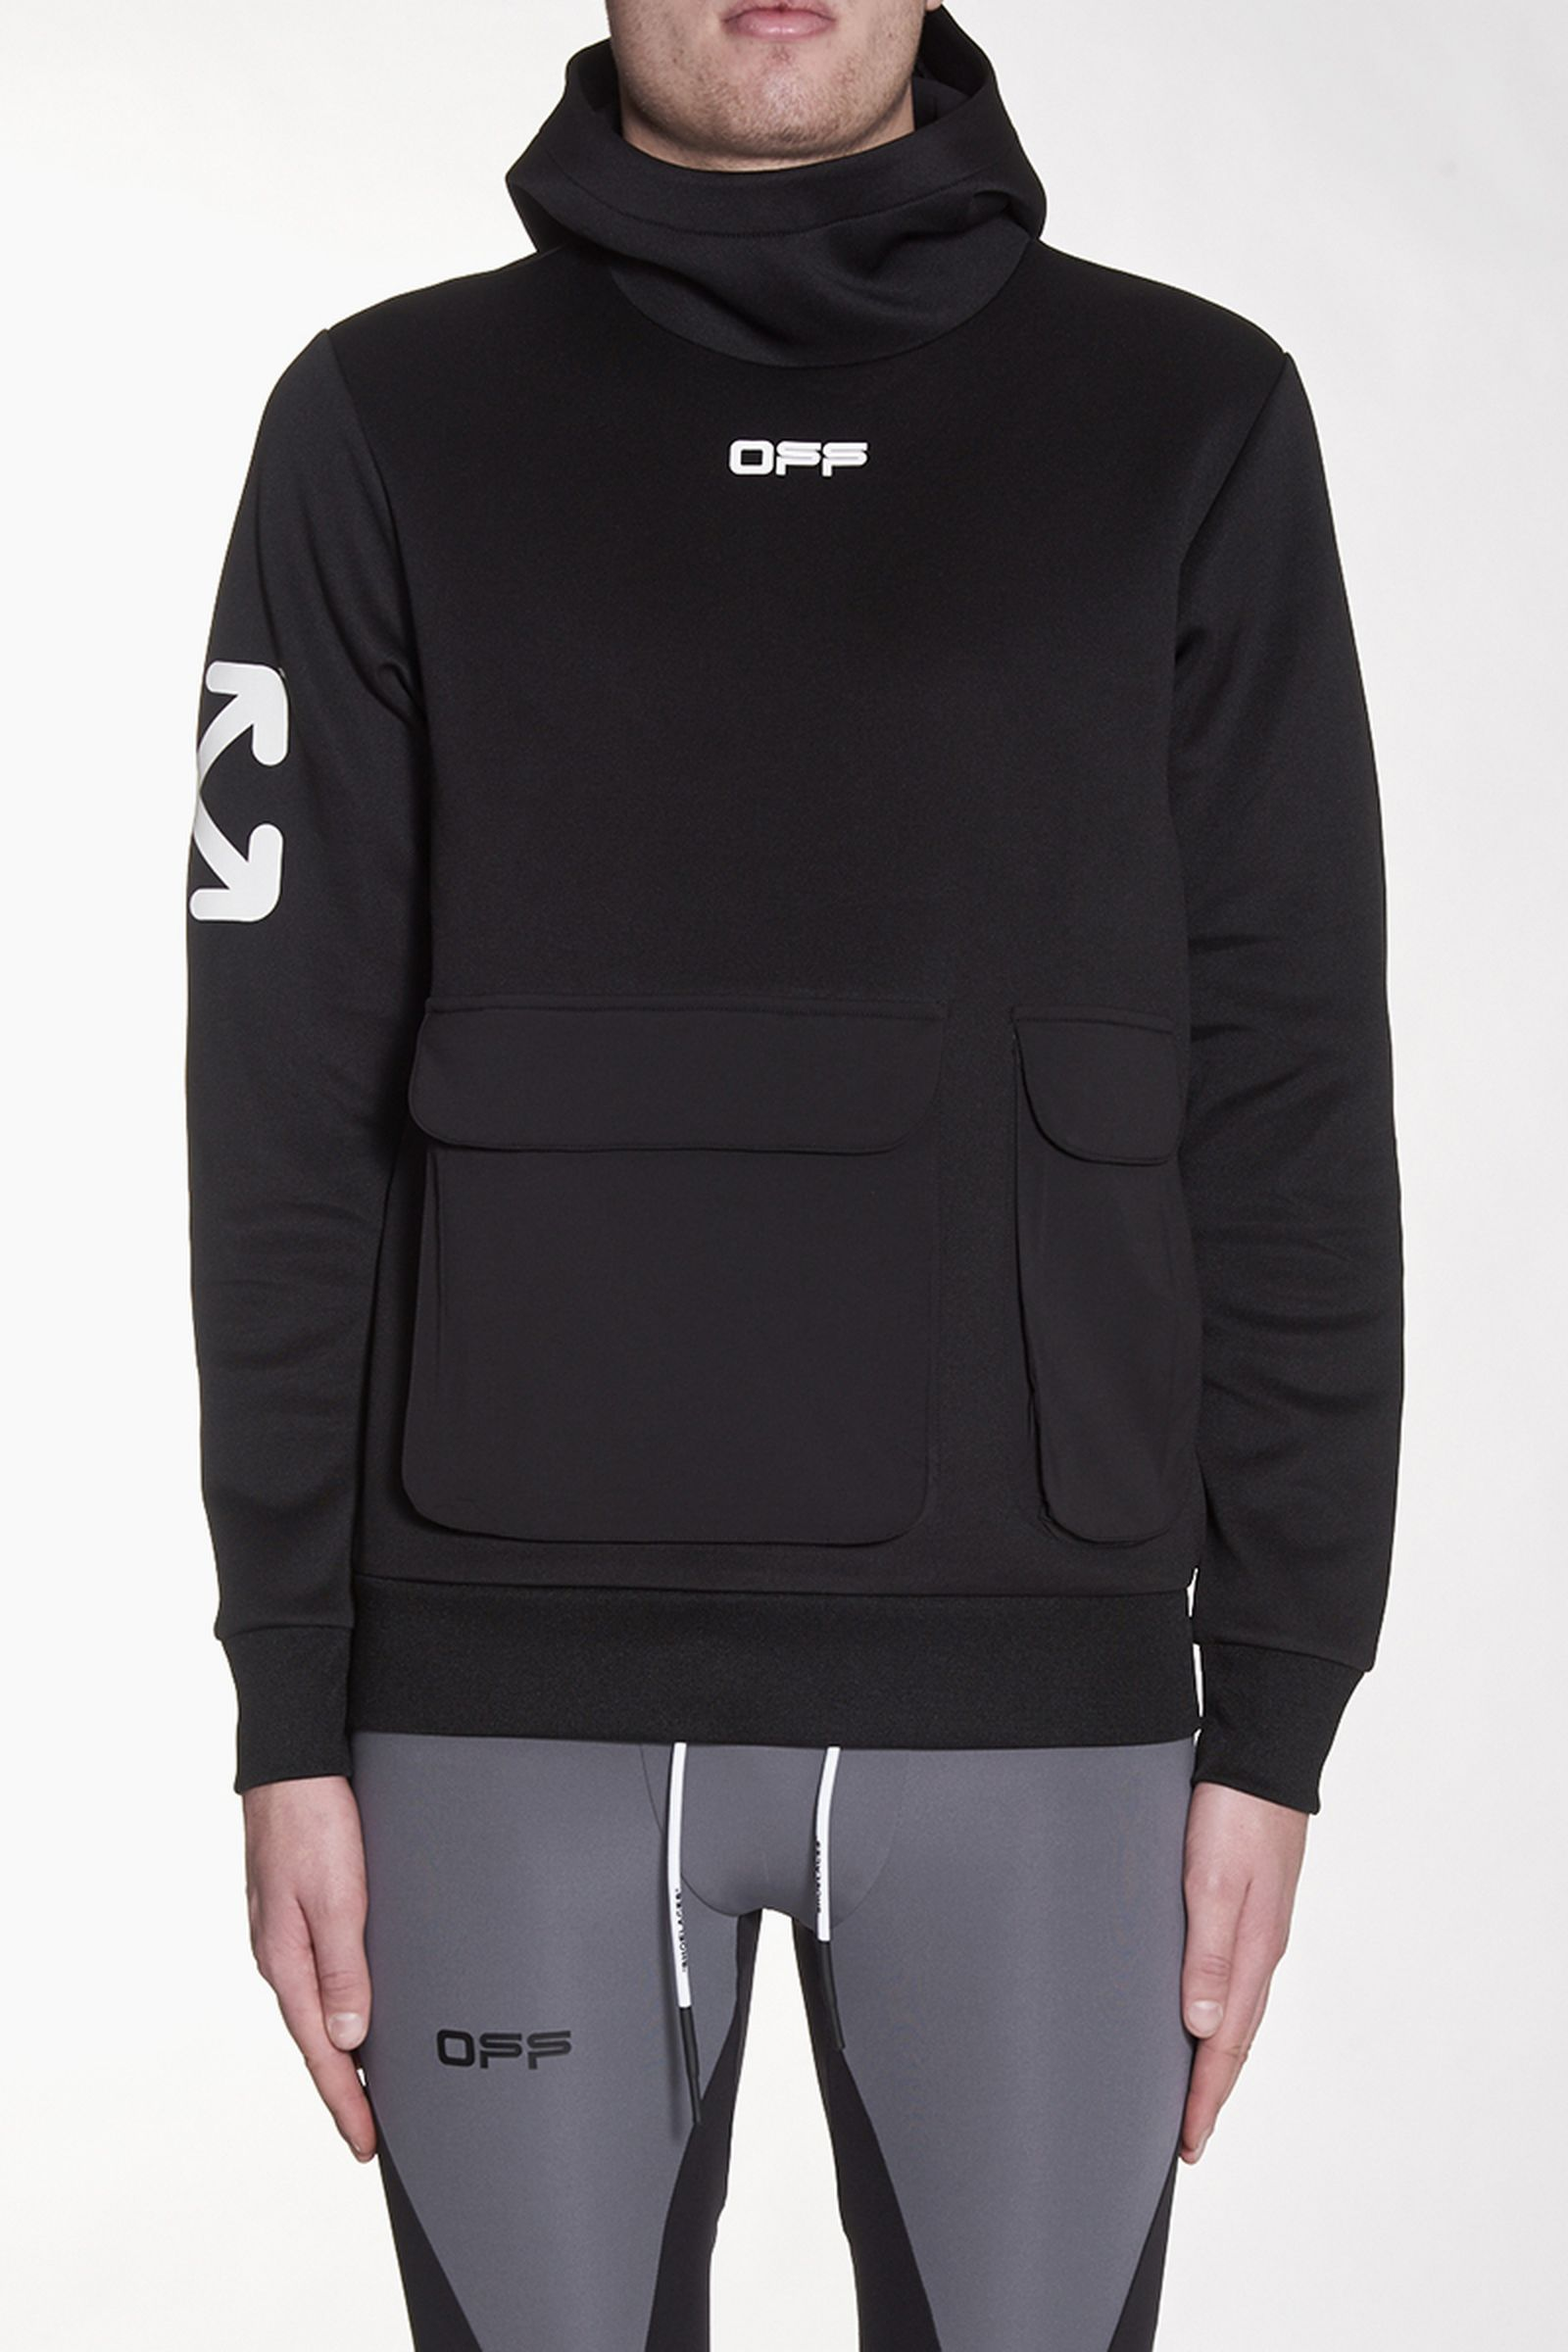 11off-white-activewear-off-active